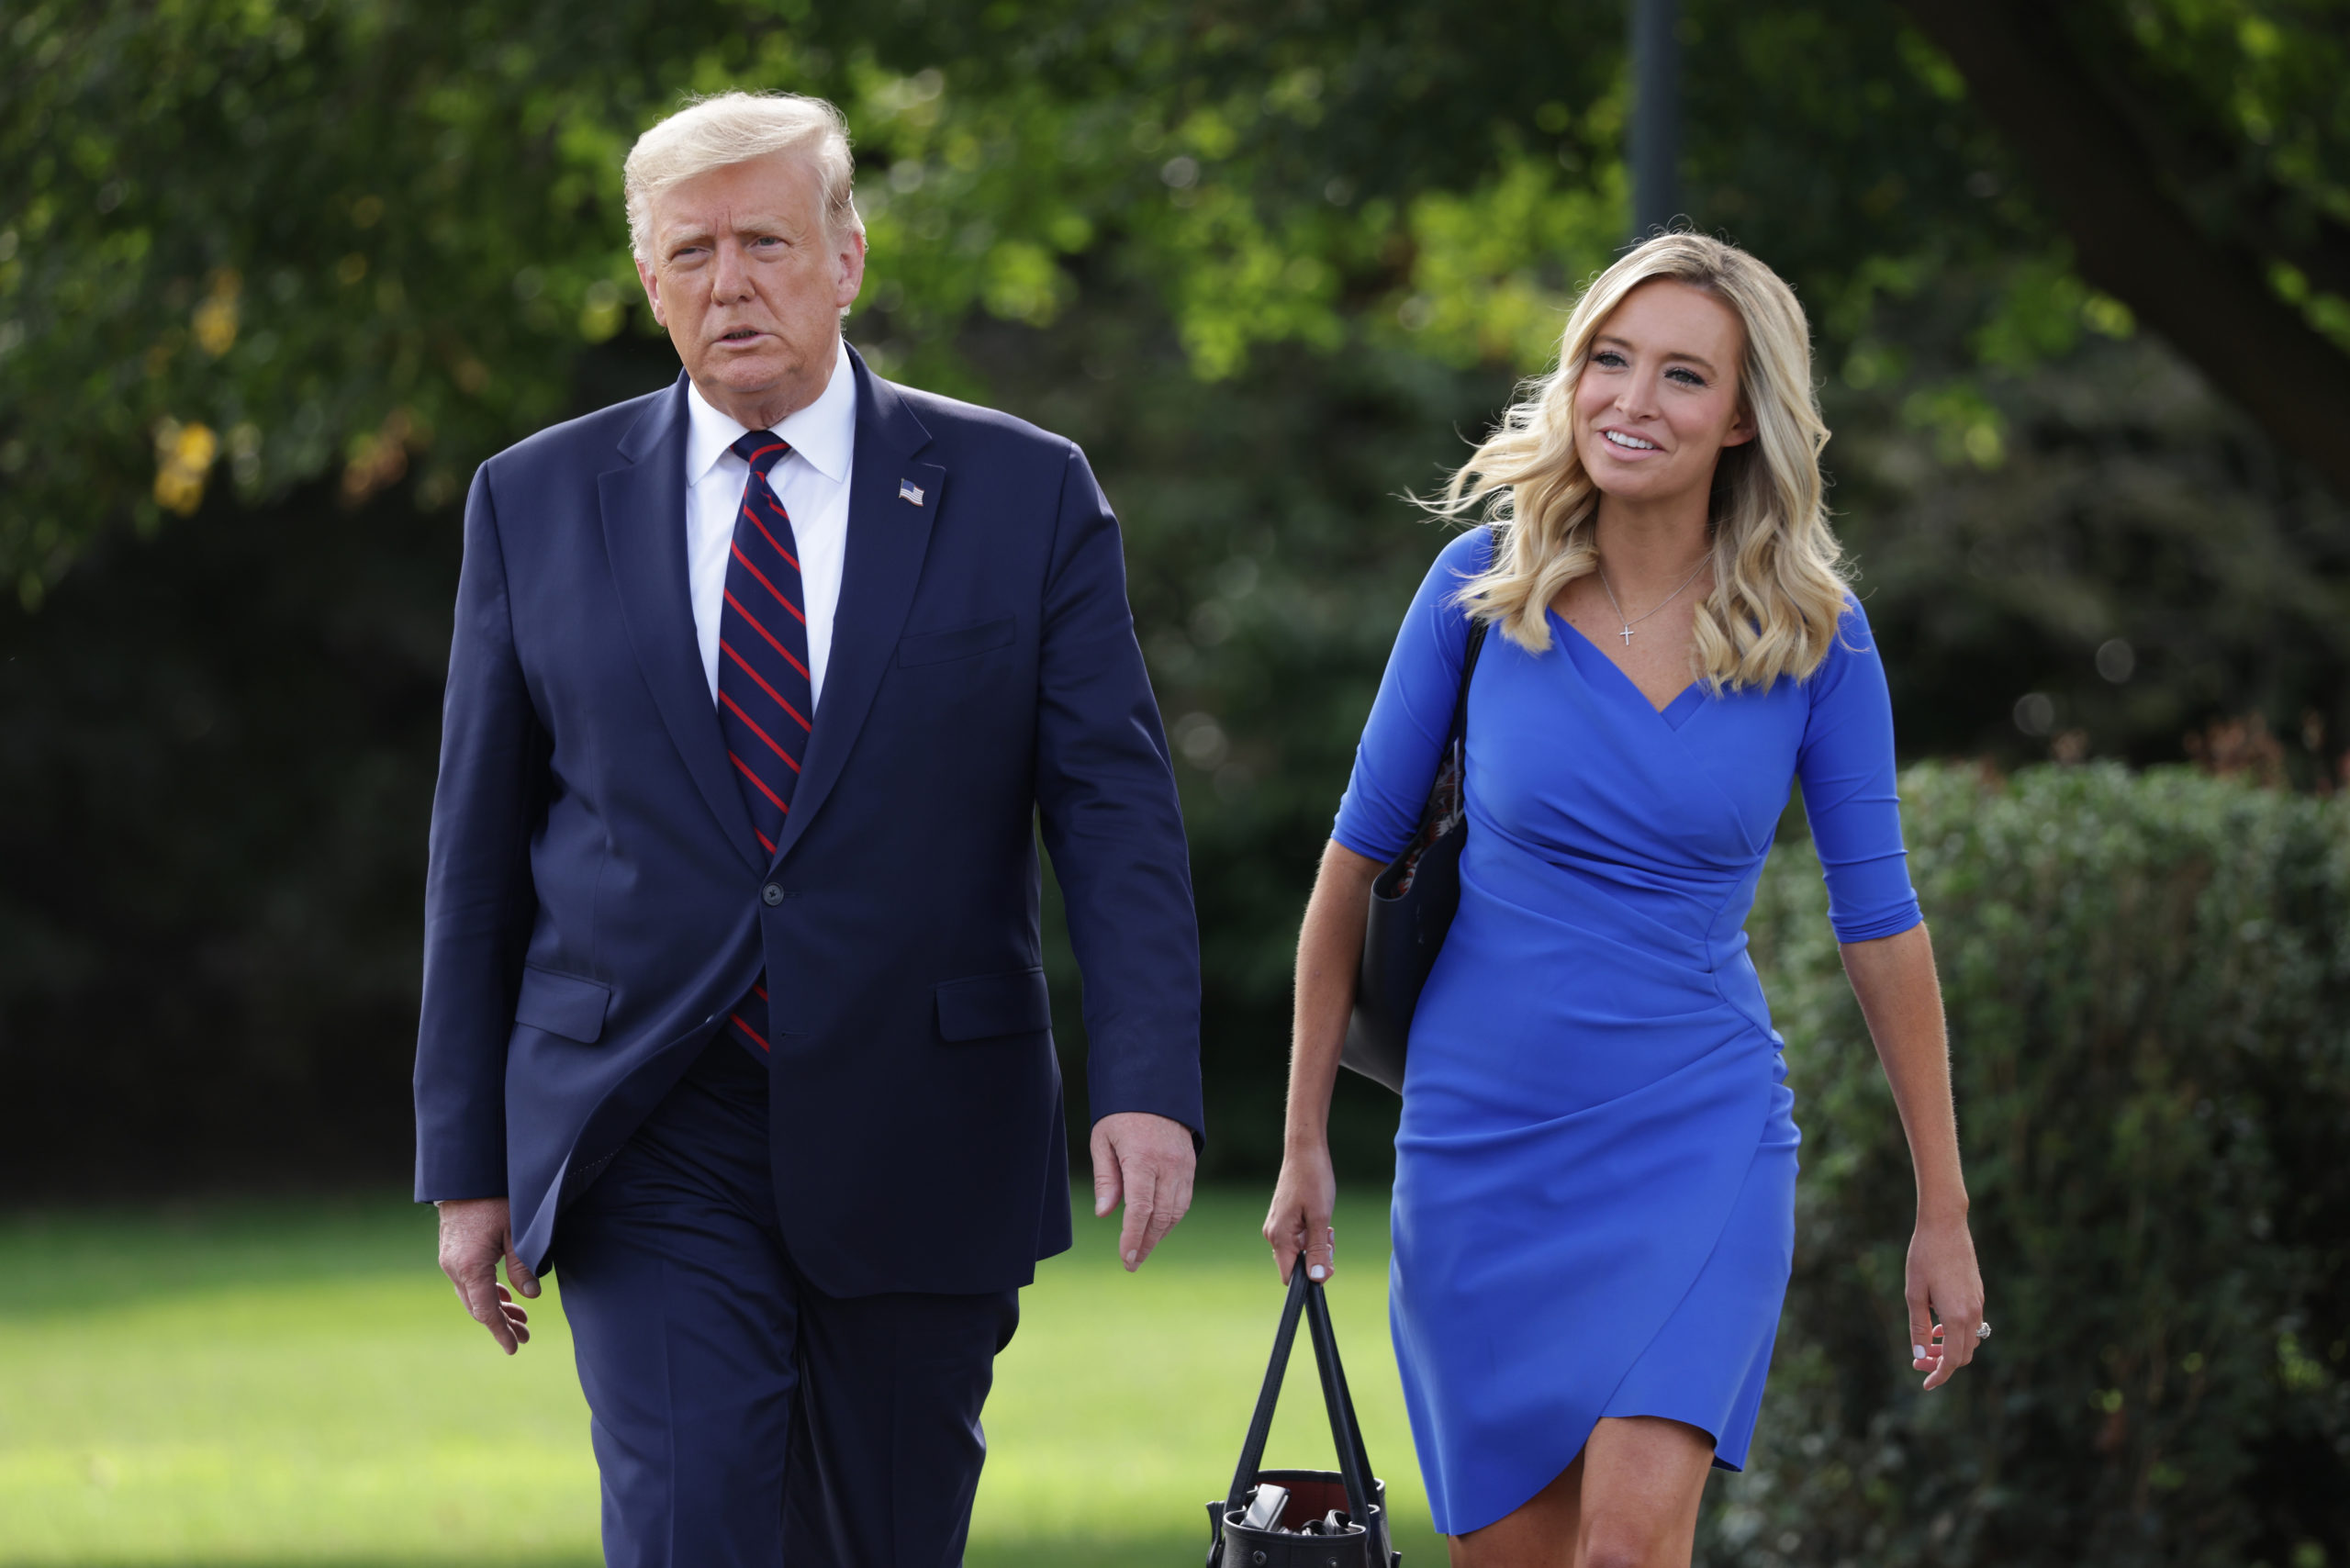 WASHINGTON, DC - SEPTEMBER 15: U.S. President Donald Trump and White House Press Secretary Kayleigh McEnany walk toward members of the press prior to Trump's departure from the White House on September 15, 2020 in Washington, DC. President Trump was traveling to Philadelphia to participate in an ABC News town hall event. (Photo by Alex Wong/Getty Images)